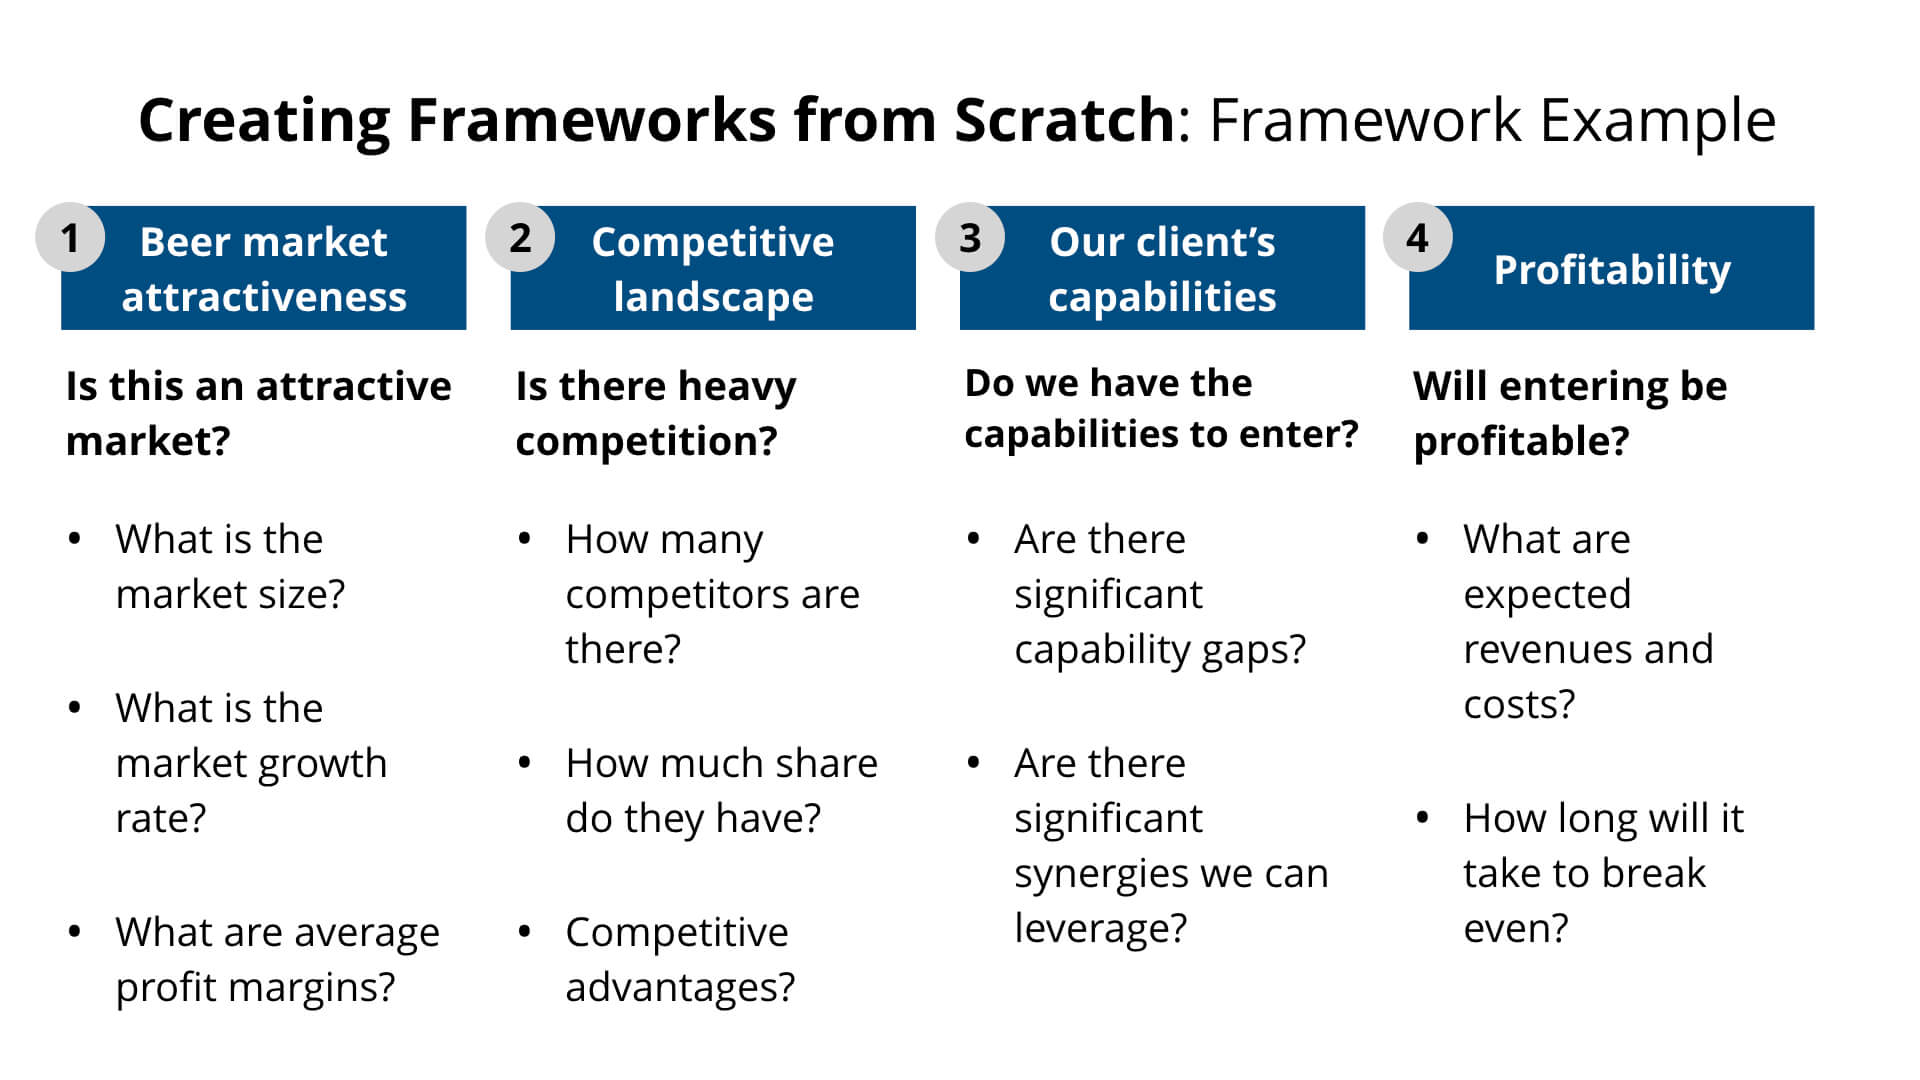 Creating Frameworks from Scratch: Framework Example